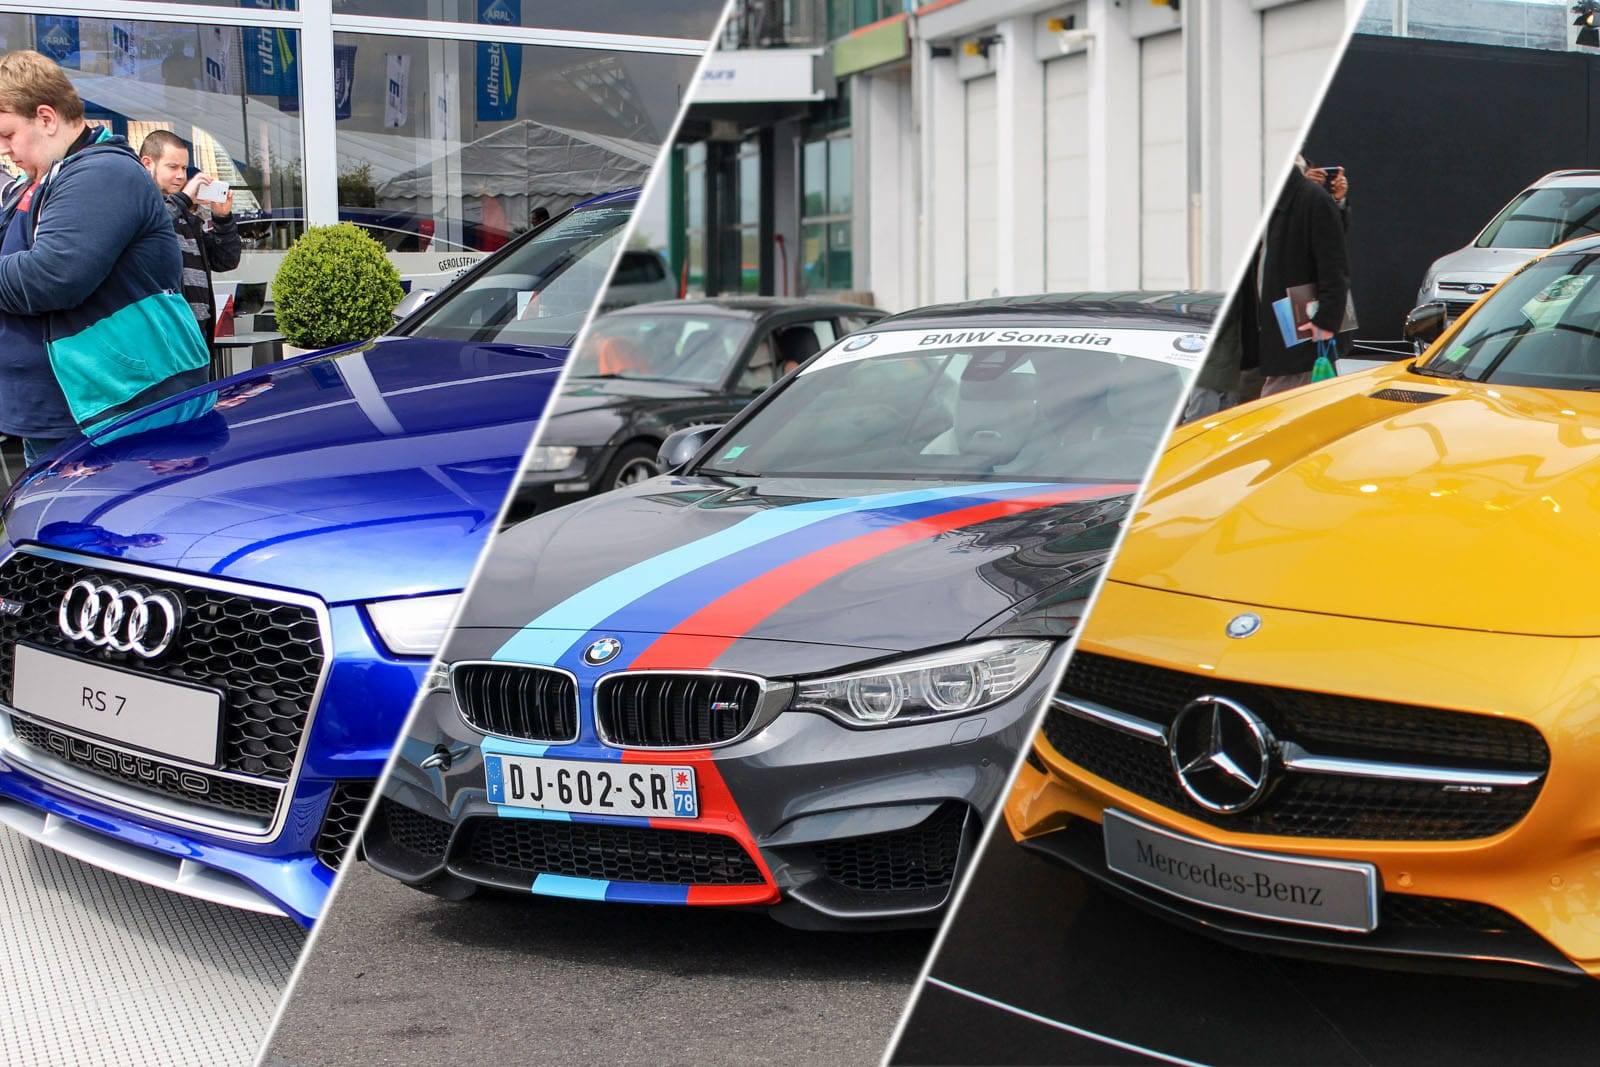 Gammes S, RS, M Performance, AMG Sport, … comment s'y retrouver ?